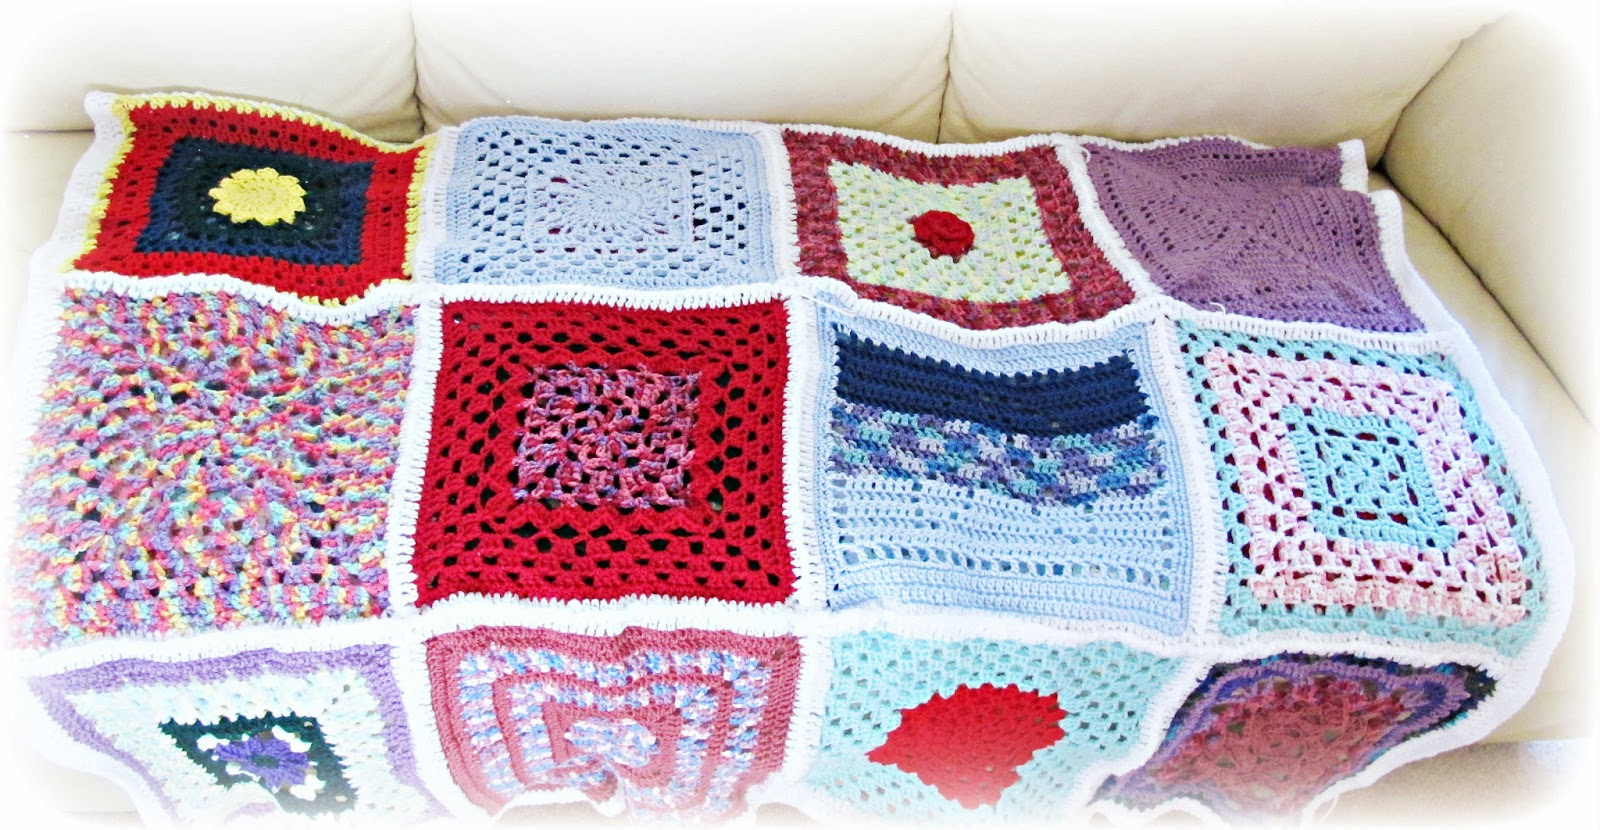 image crochet blanket afghan rainbow twelve inch square two cheeky monkeys